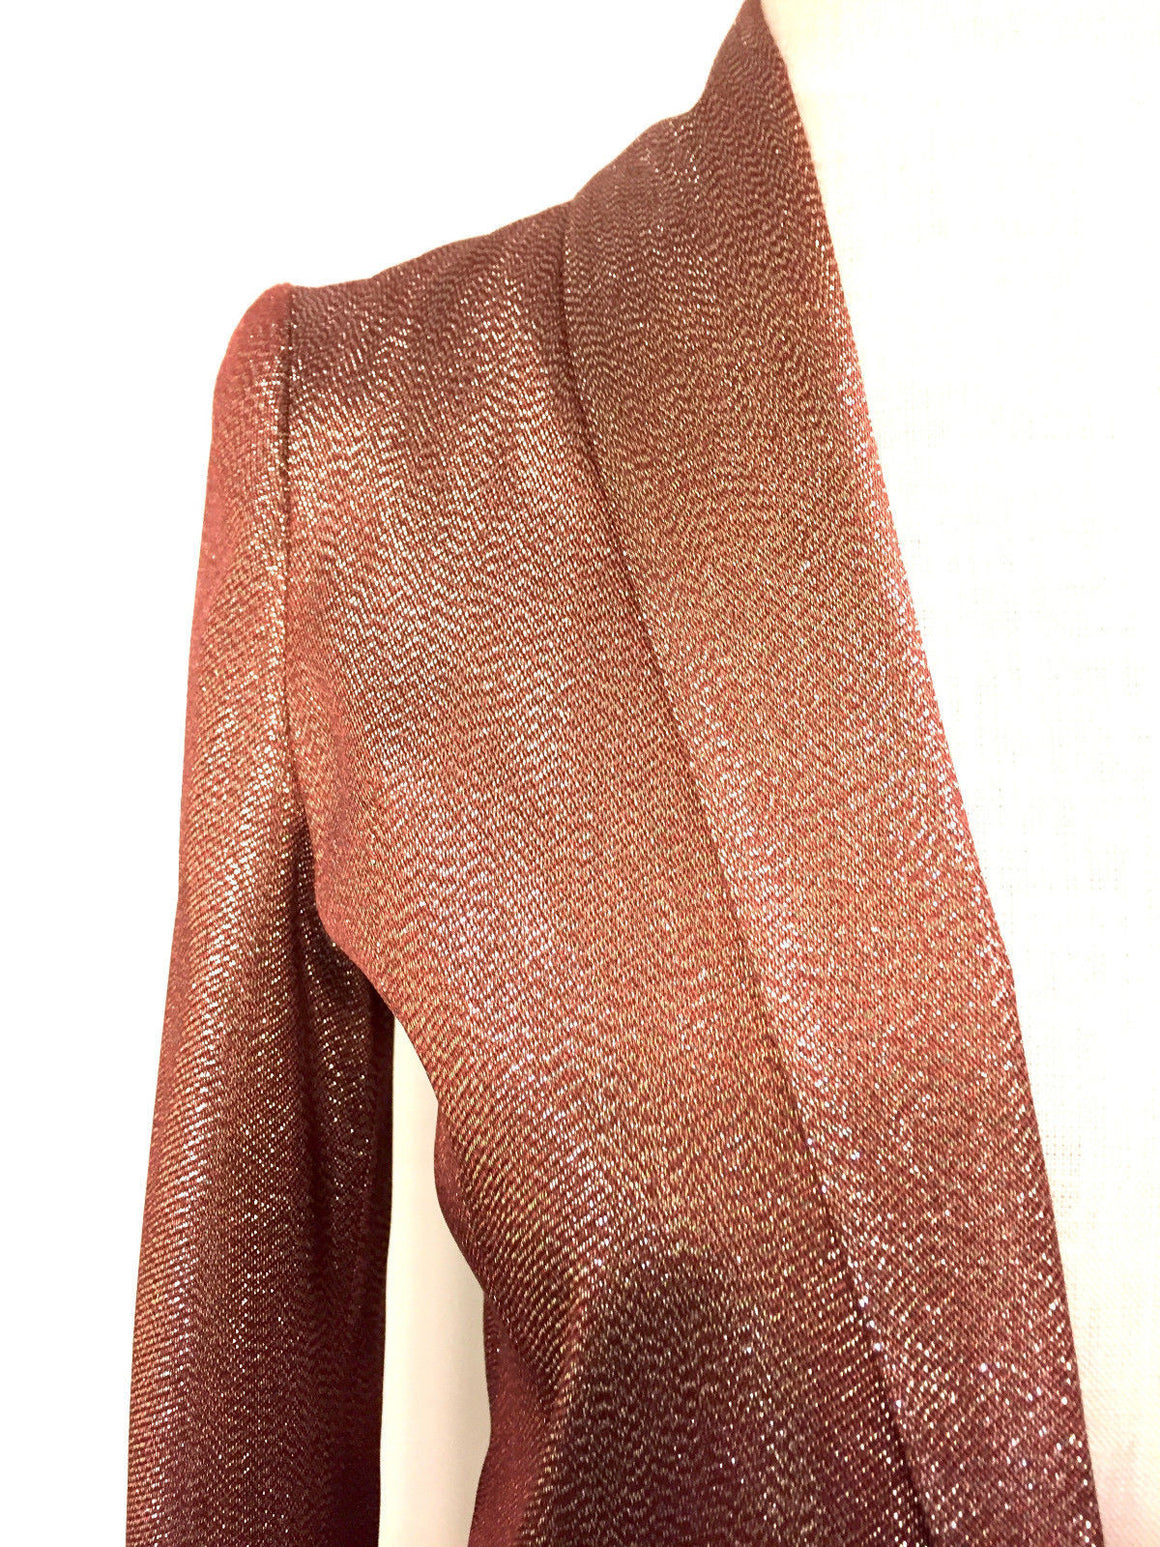 bisbiz.com GUCCI  Copper Silk-Blend Gold/Silver Metallic Shawl Collared Dress Jacket  Size: IT38 / US4 - Bis Luxury Resale